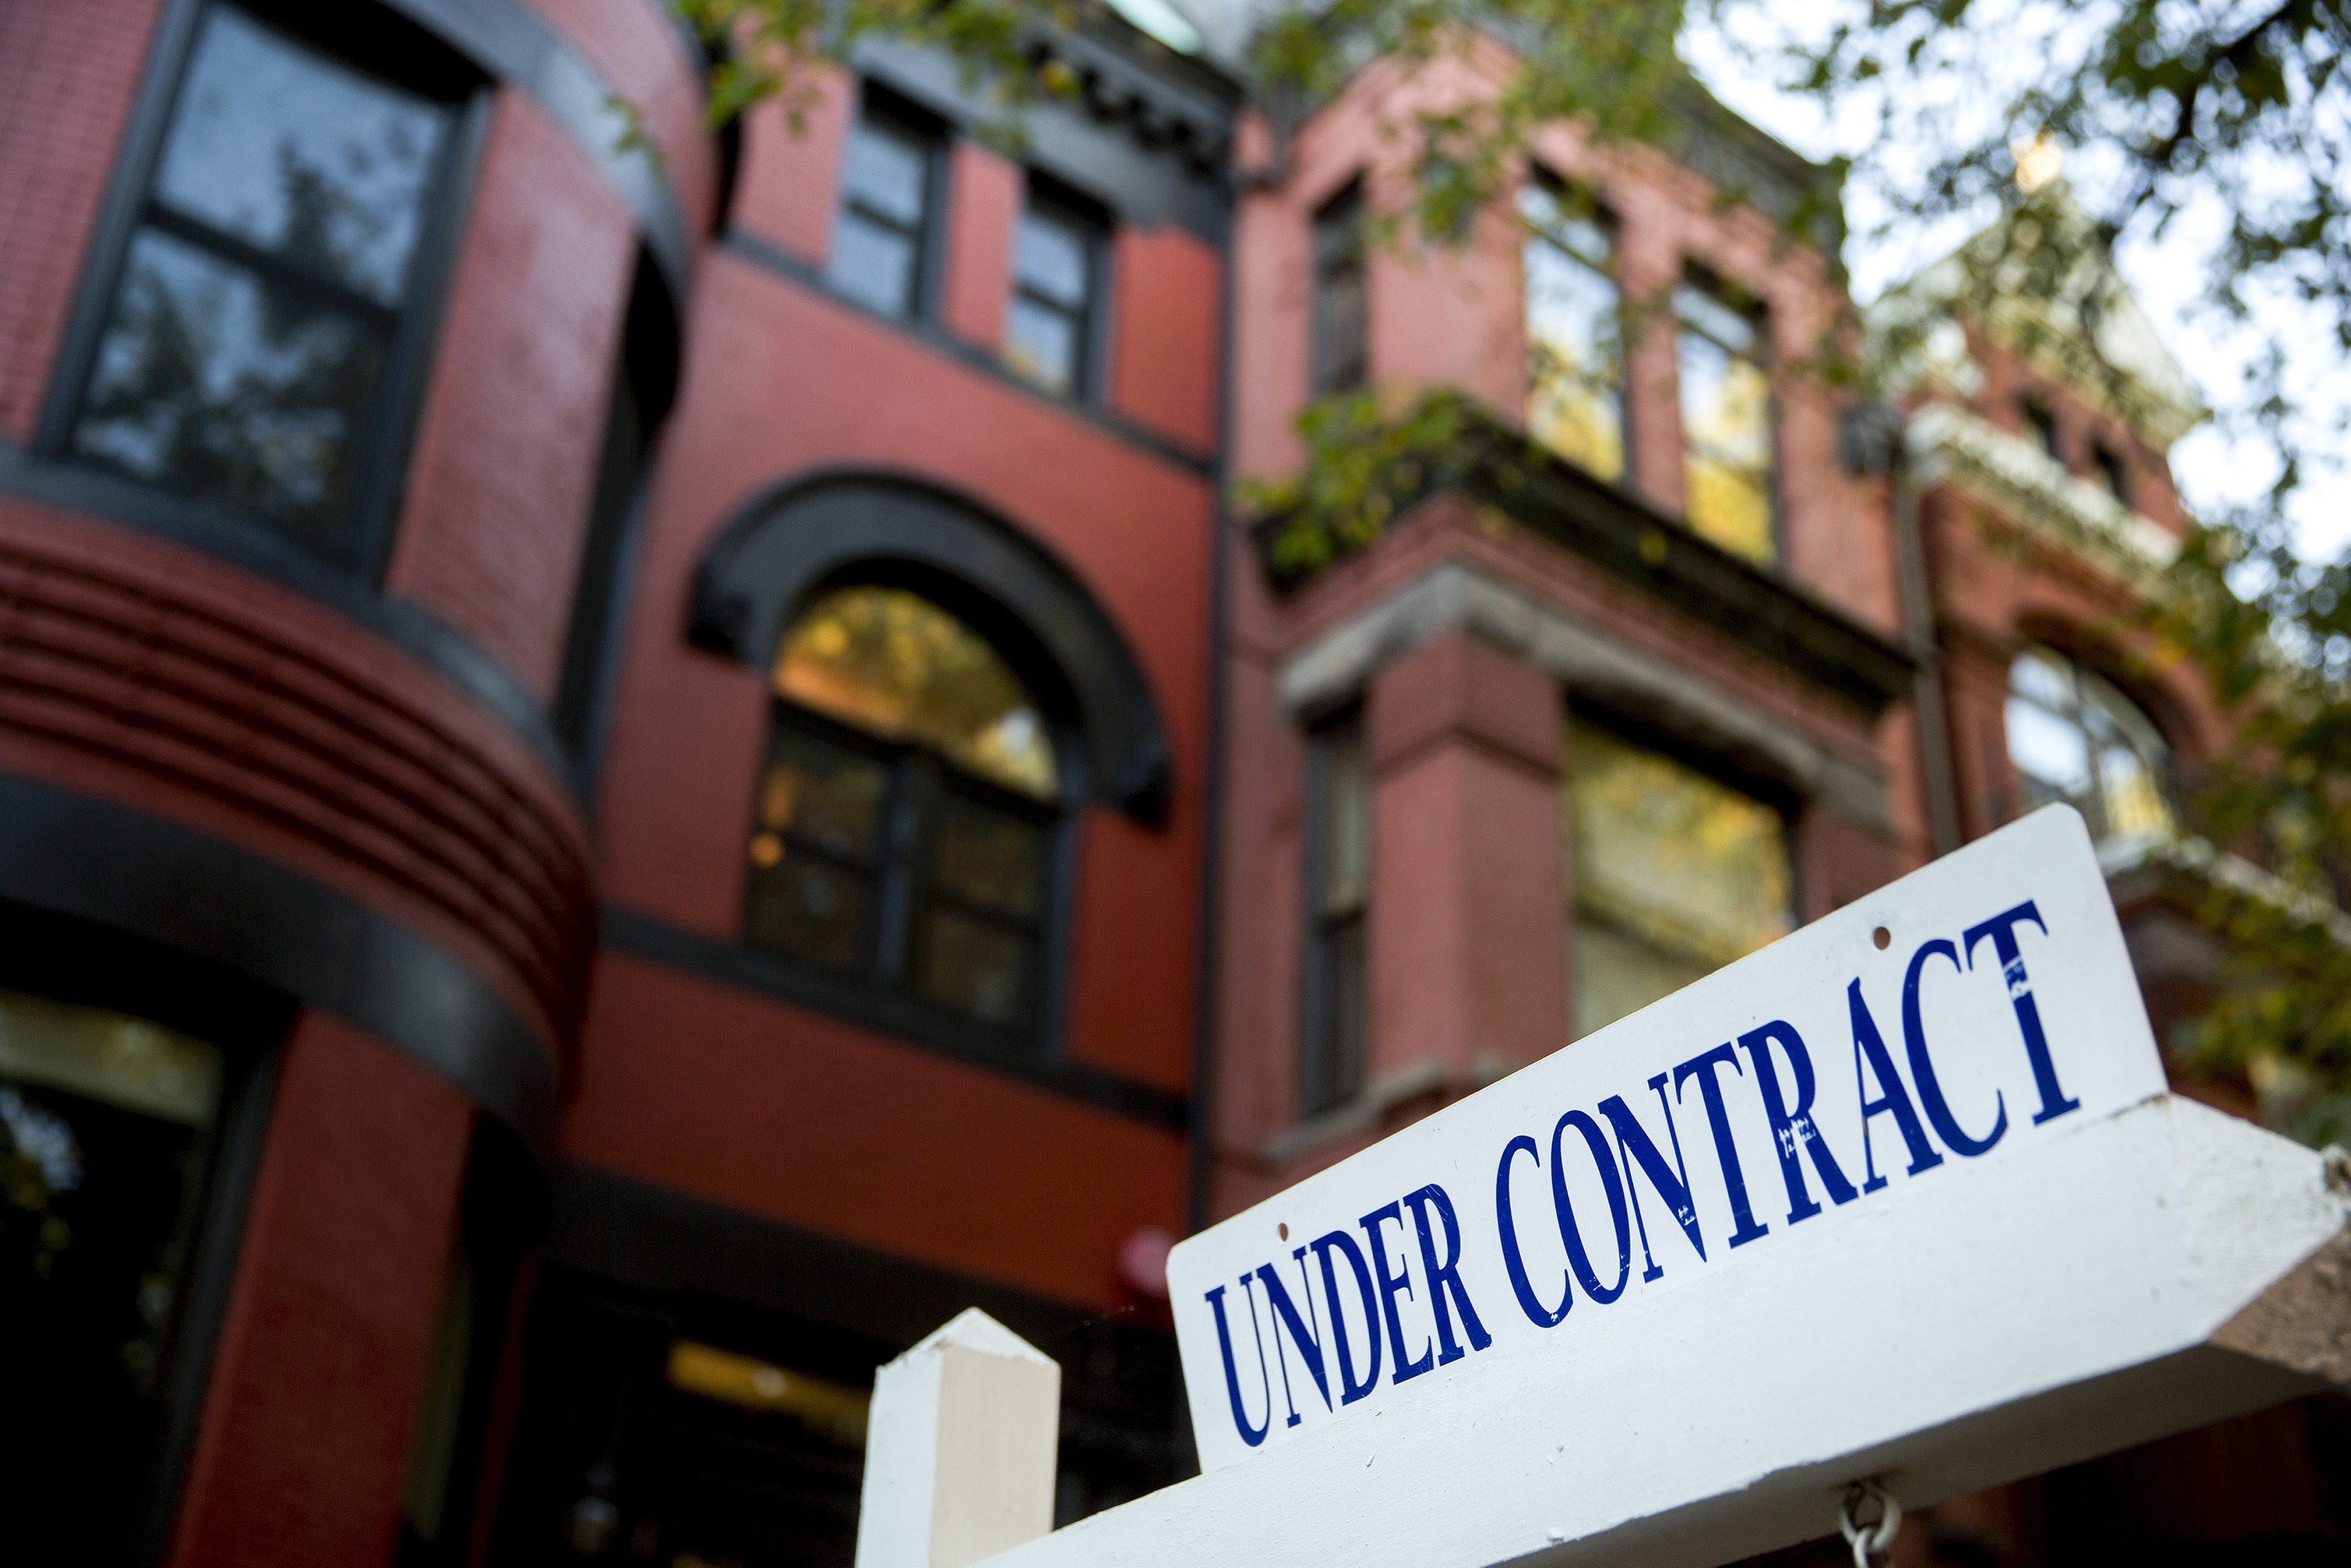 """An """"Under Contract"""" sign stands outside a property in Washington, D.C., U.S., on Friday, Oct. 17, 2014. The National Association of Realtors is scheduled to release existing home sales figures on Oct. 21. Photographer: Andrew Harrer/Bloomberg"""